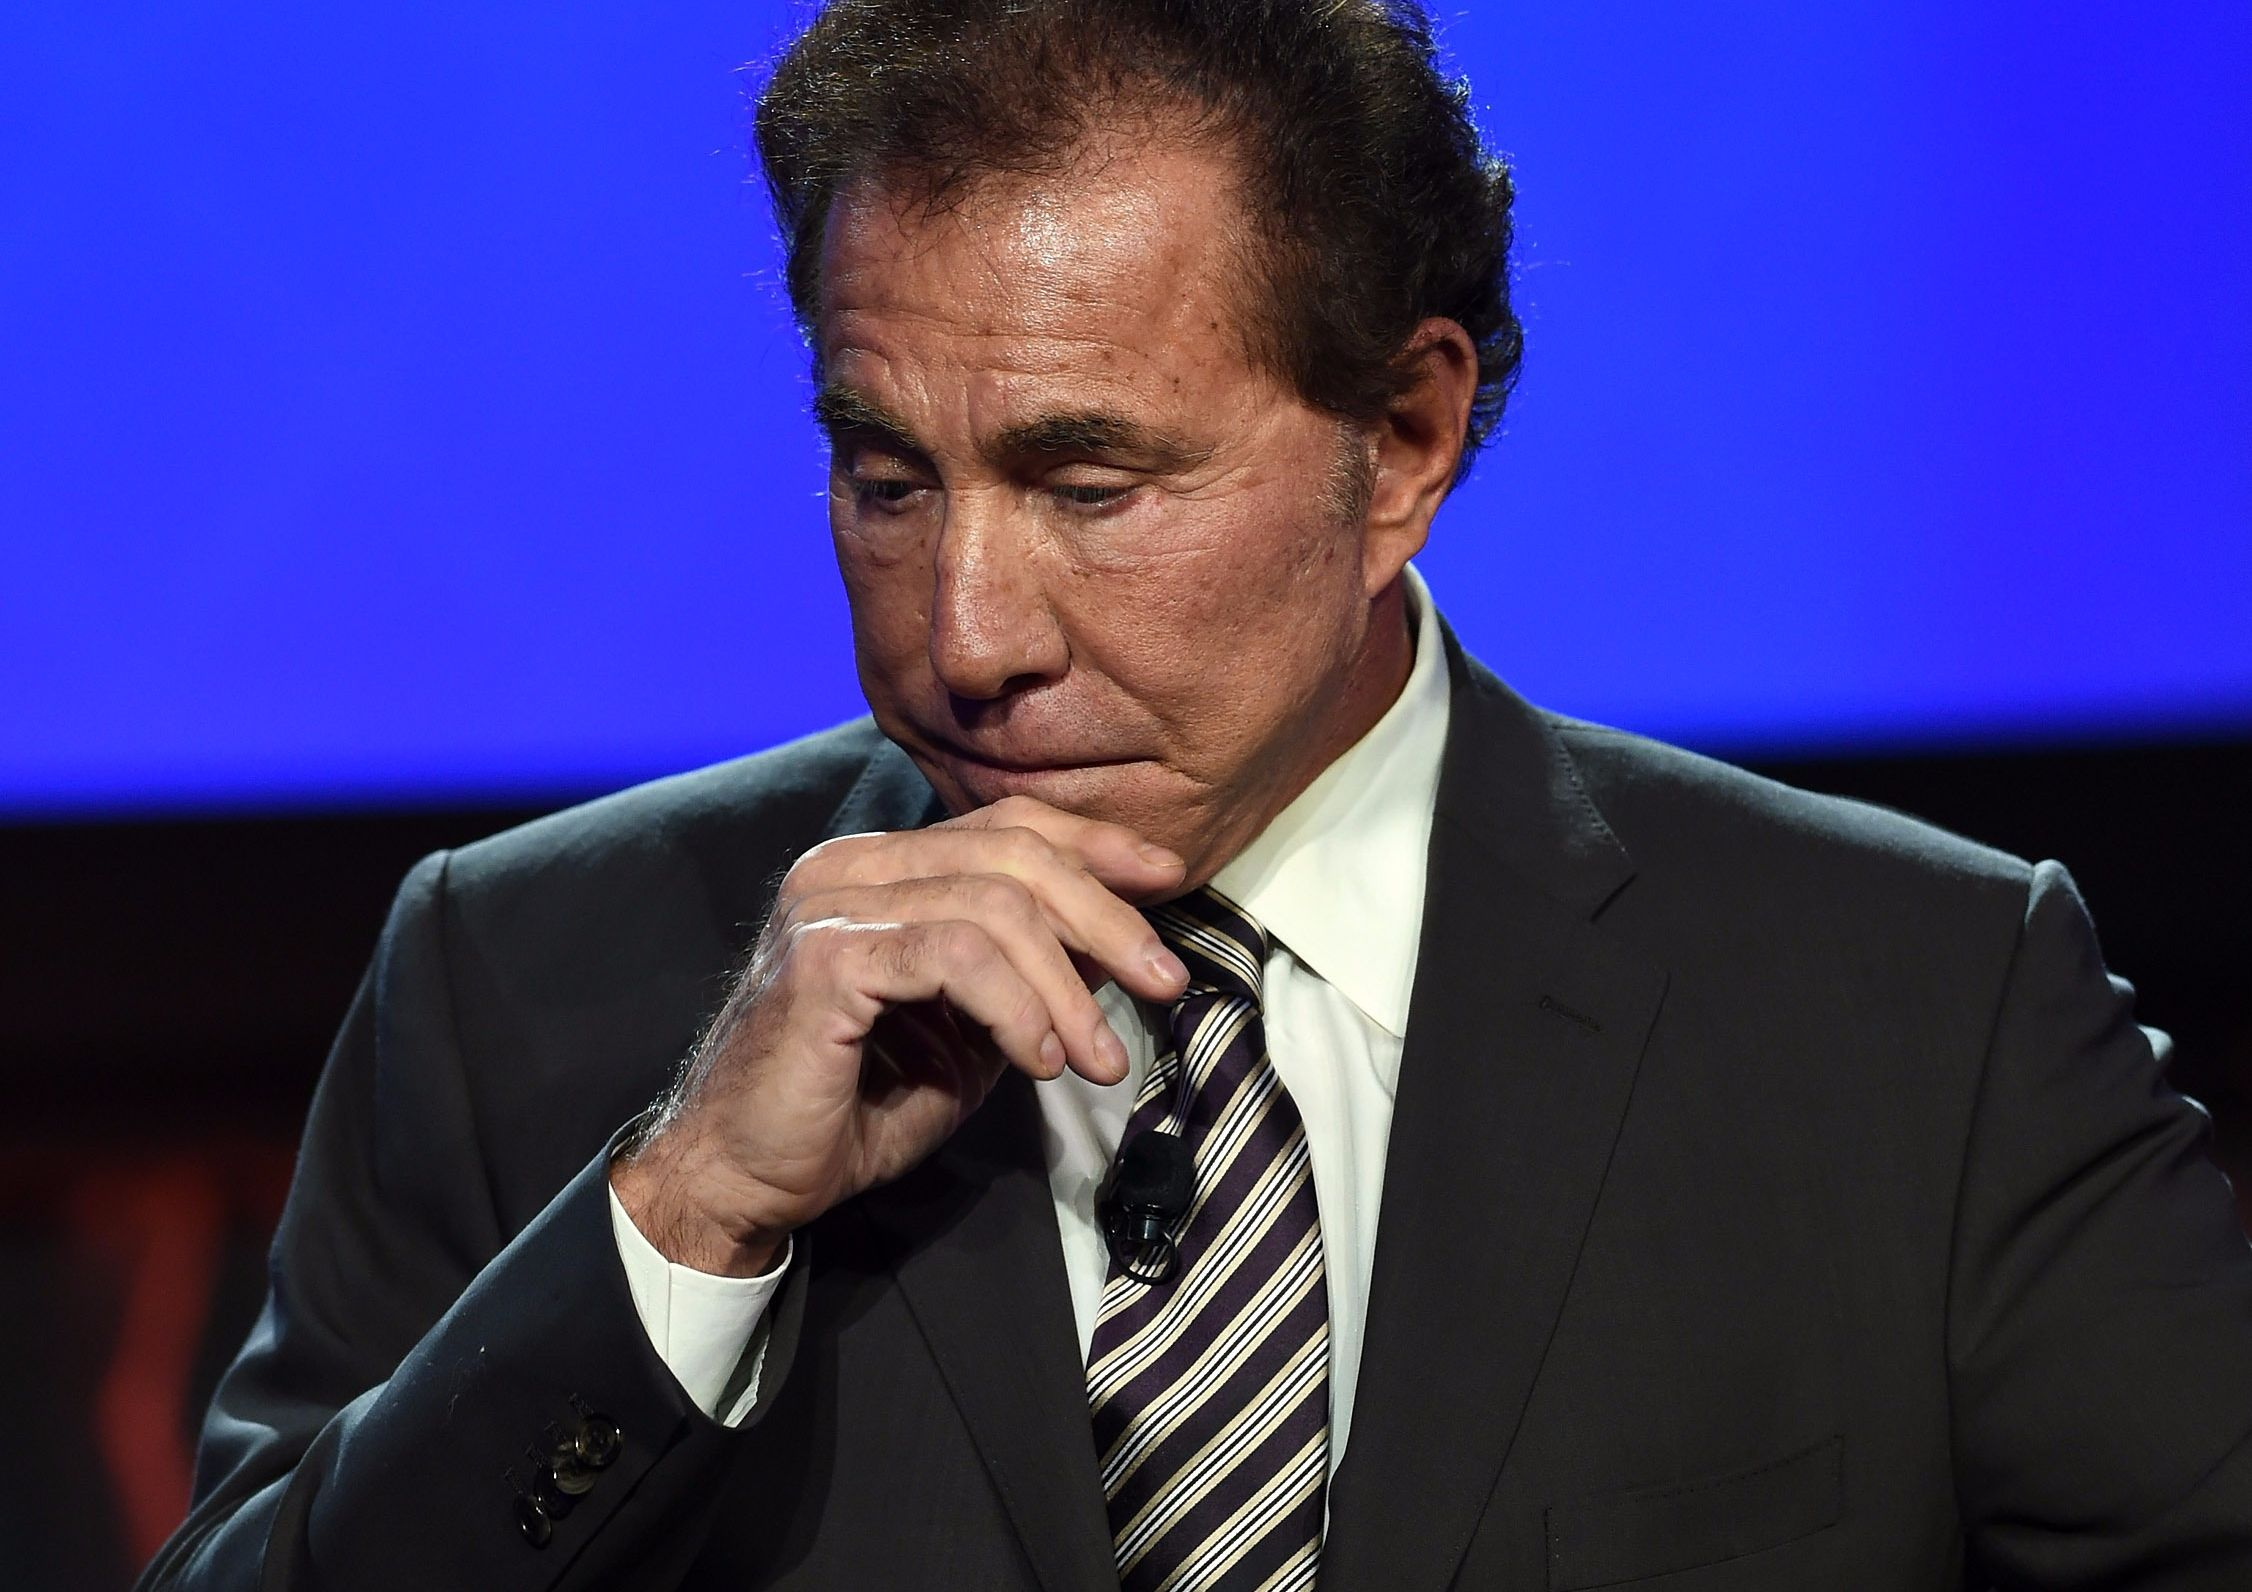 Steve Wynn to sell shares in Wynn Resorts